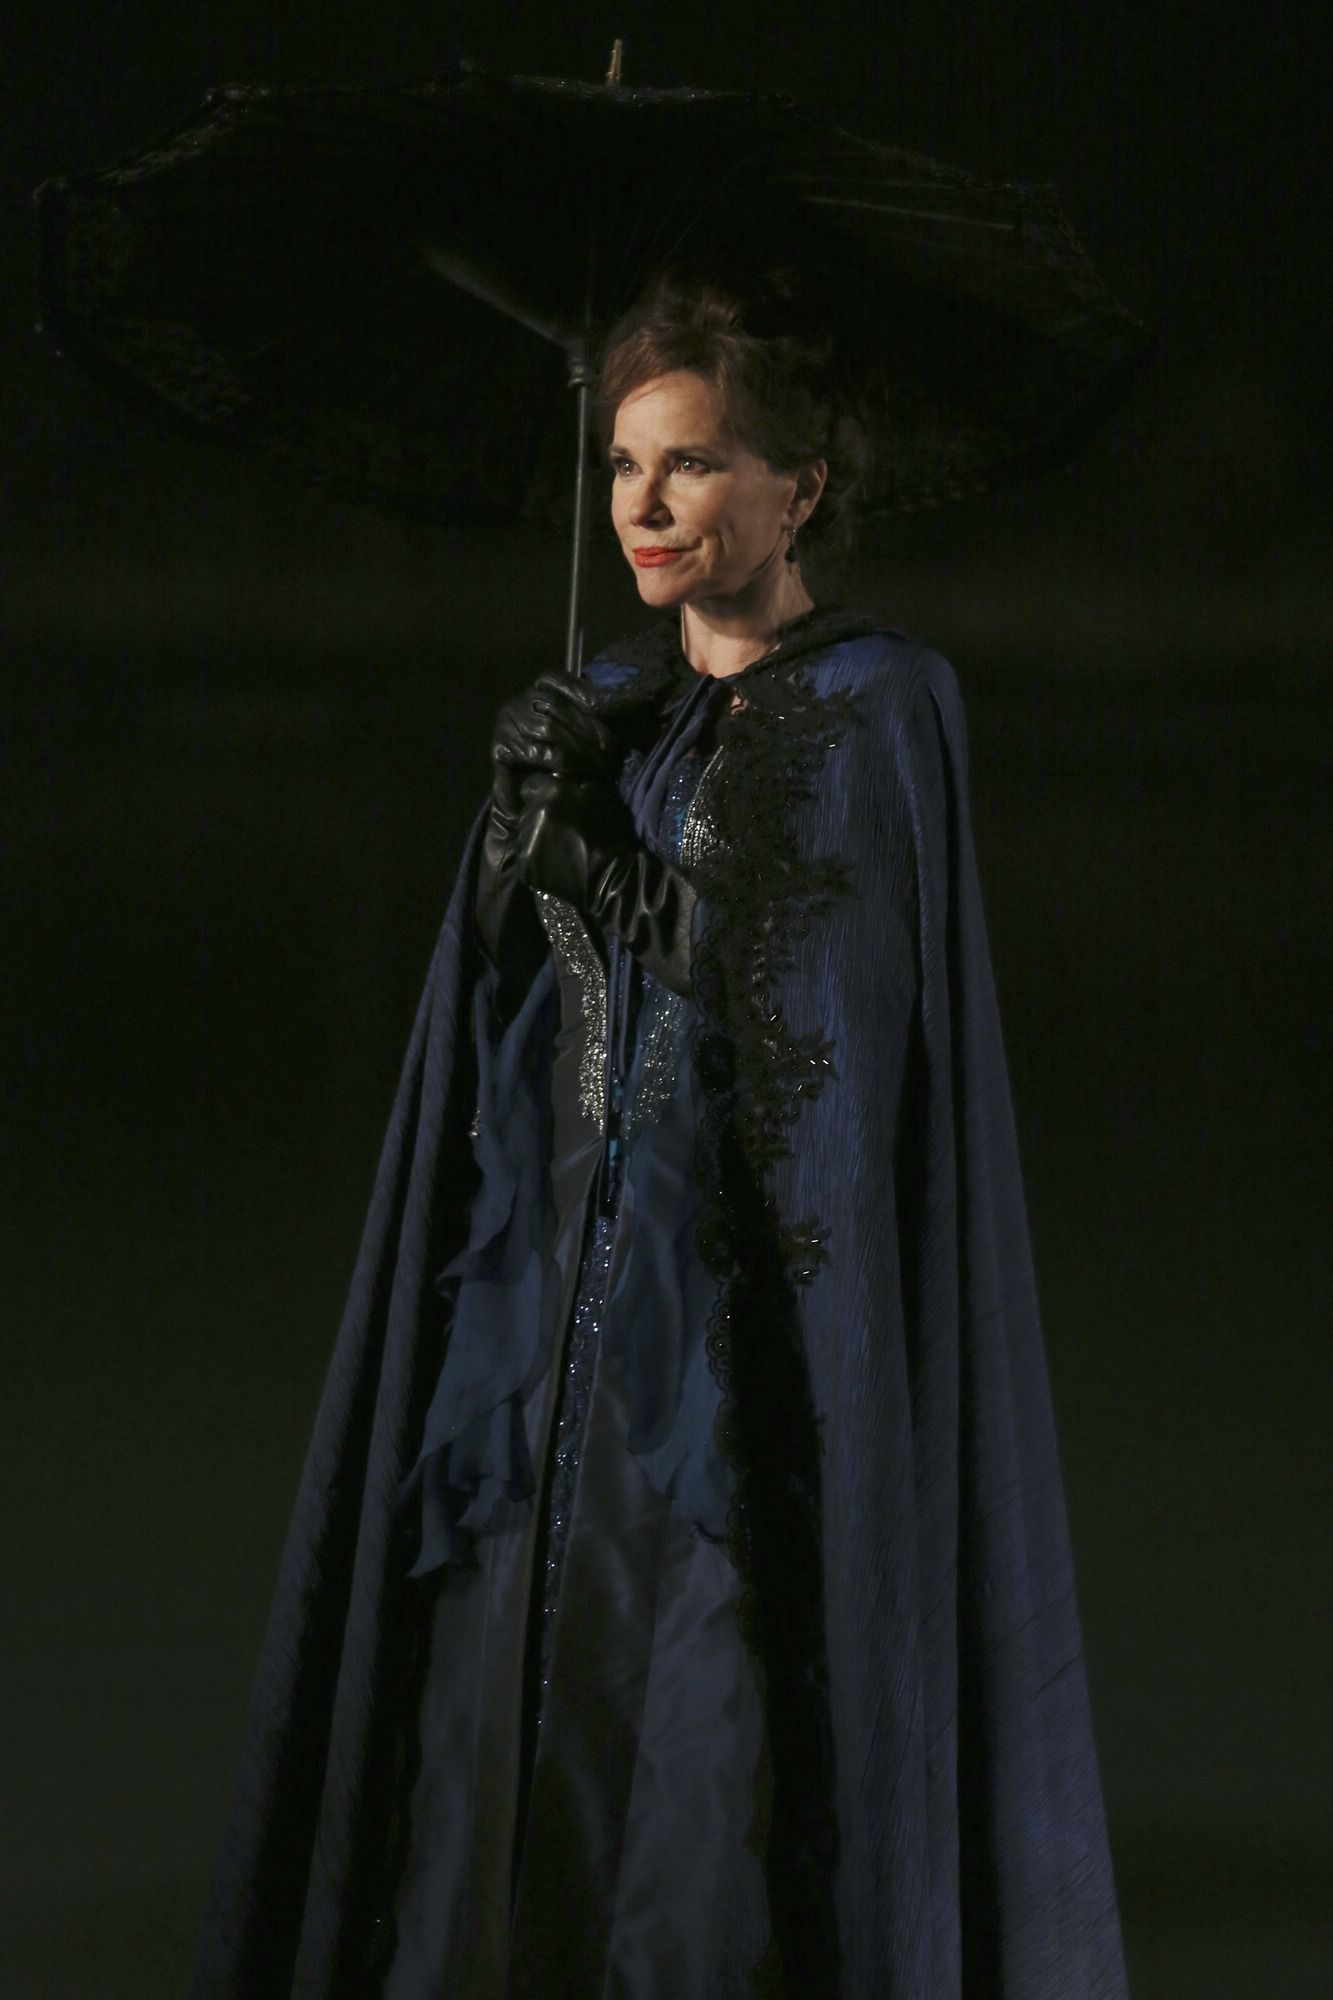 Barbara Hershey As Cora In Once Upon A Time 2011 Present Once